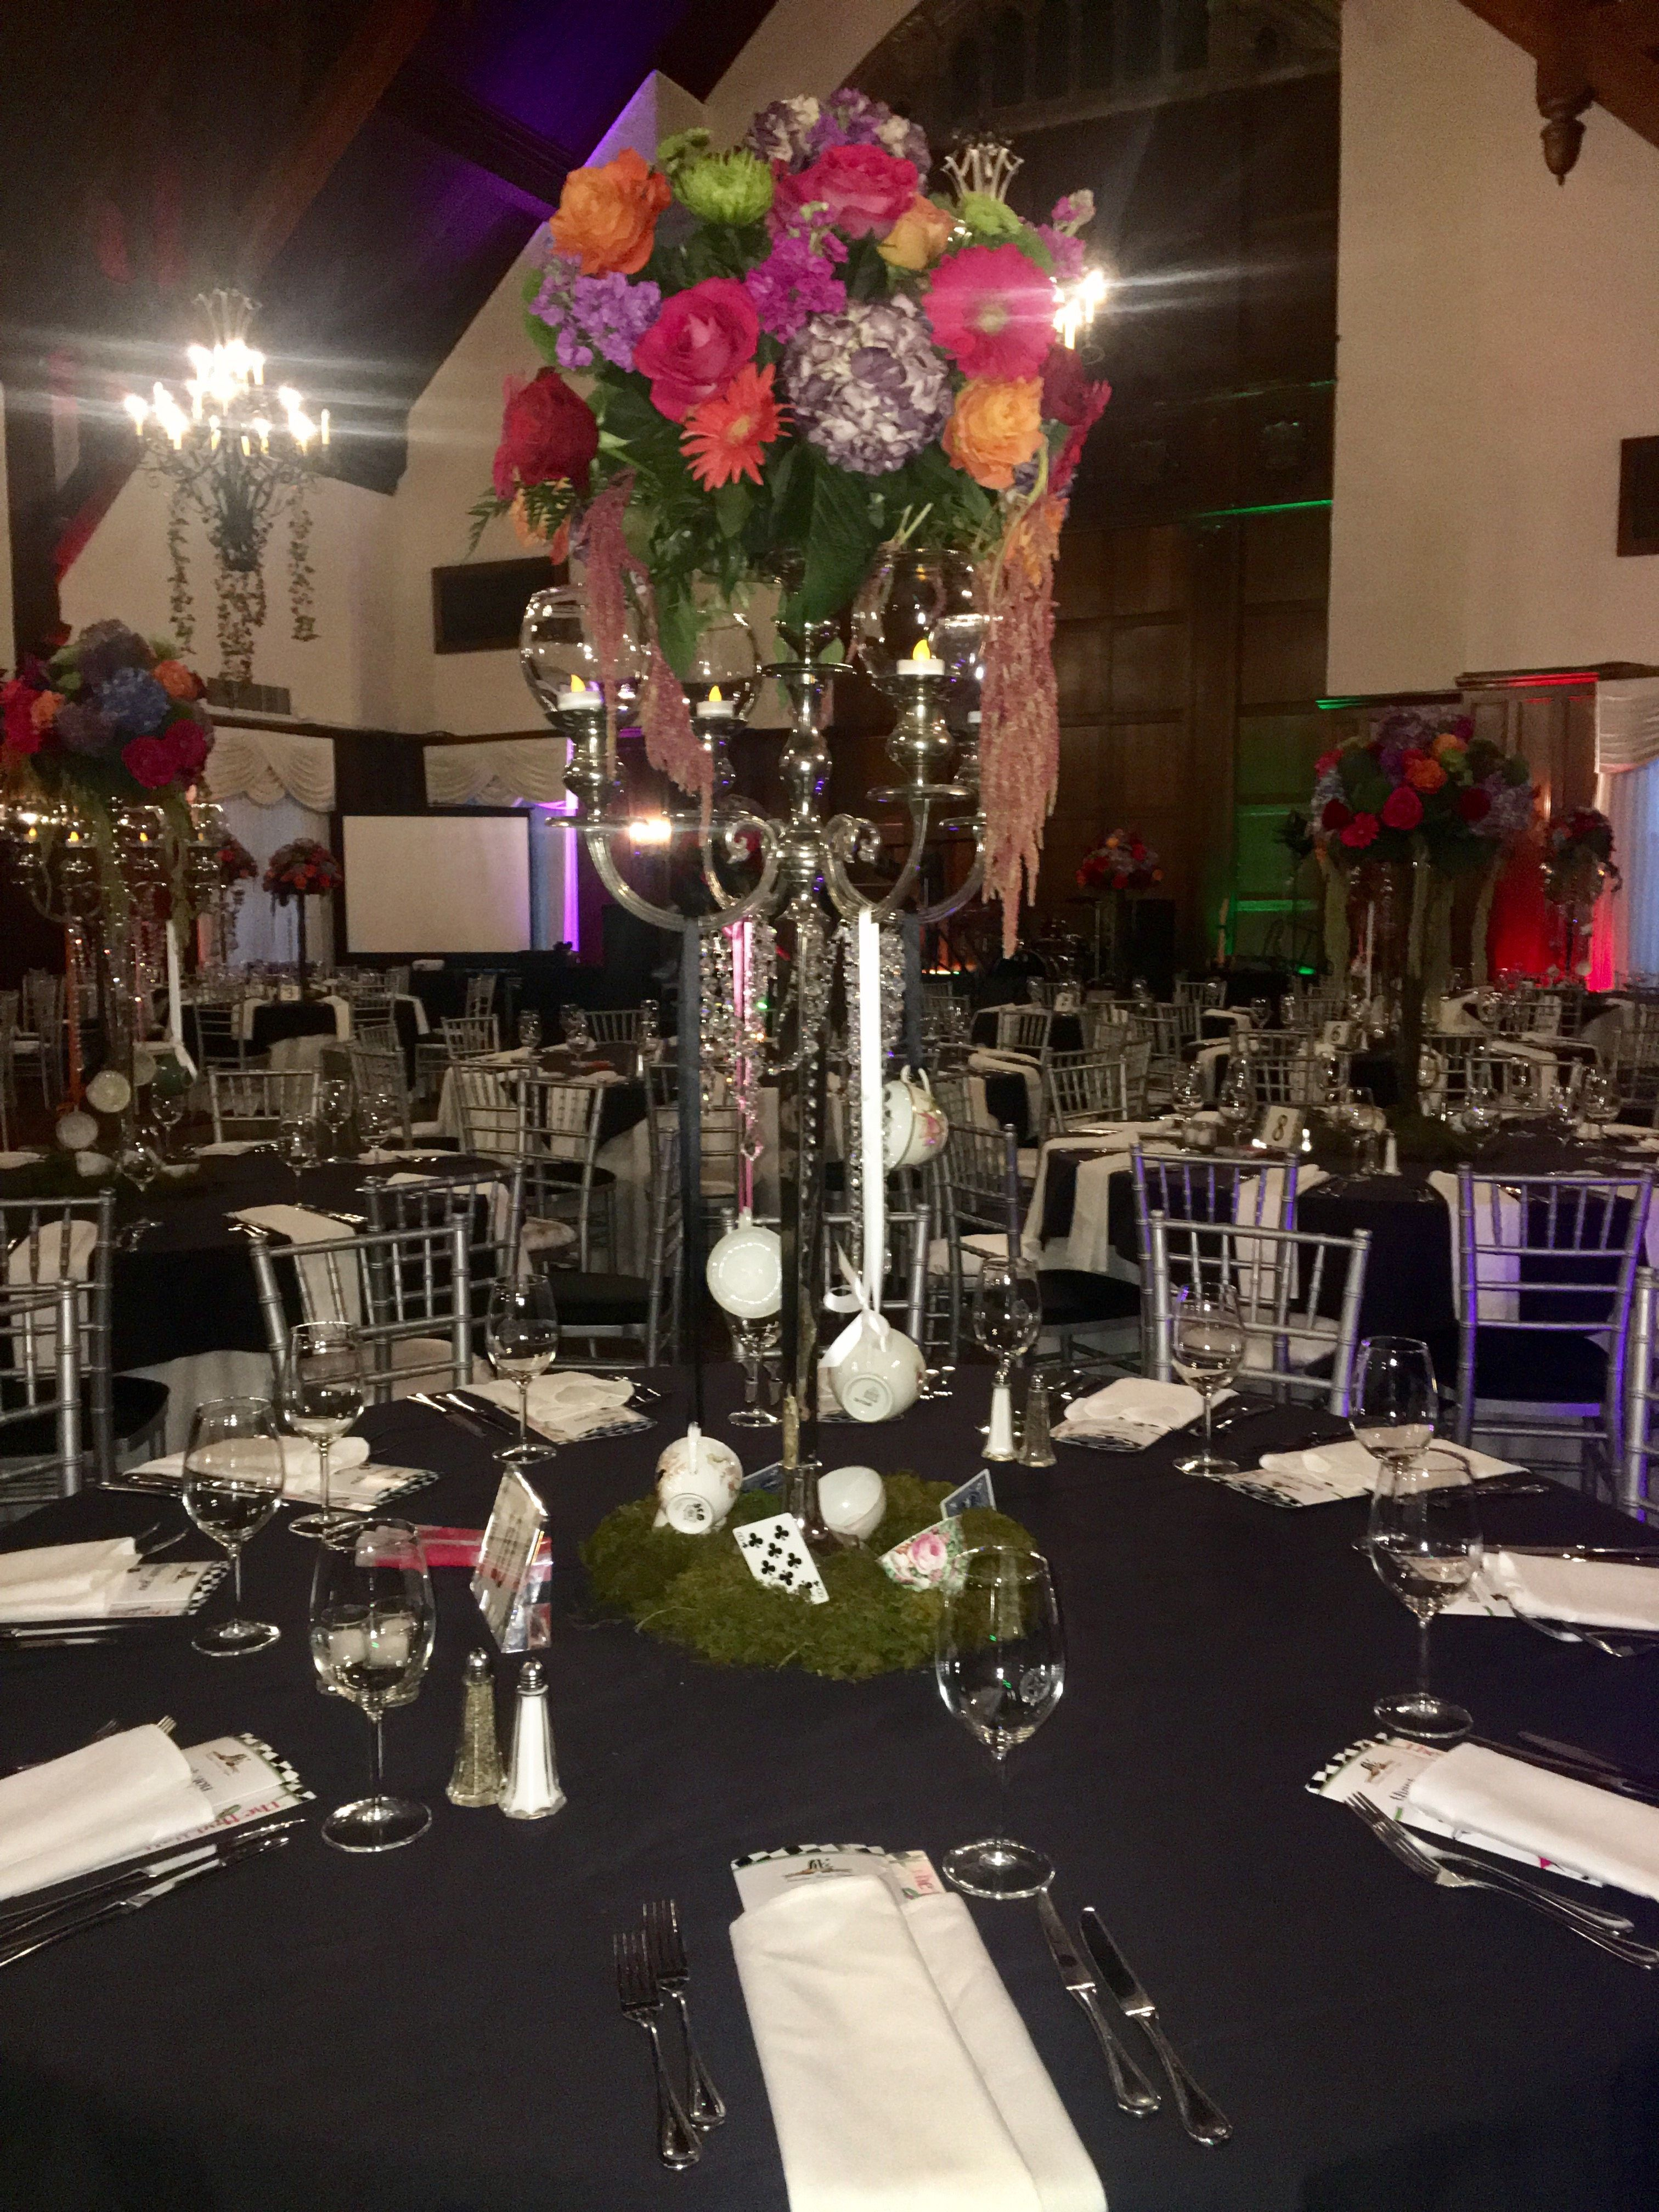 Fundraising event Table Decor for an Alice